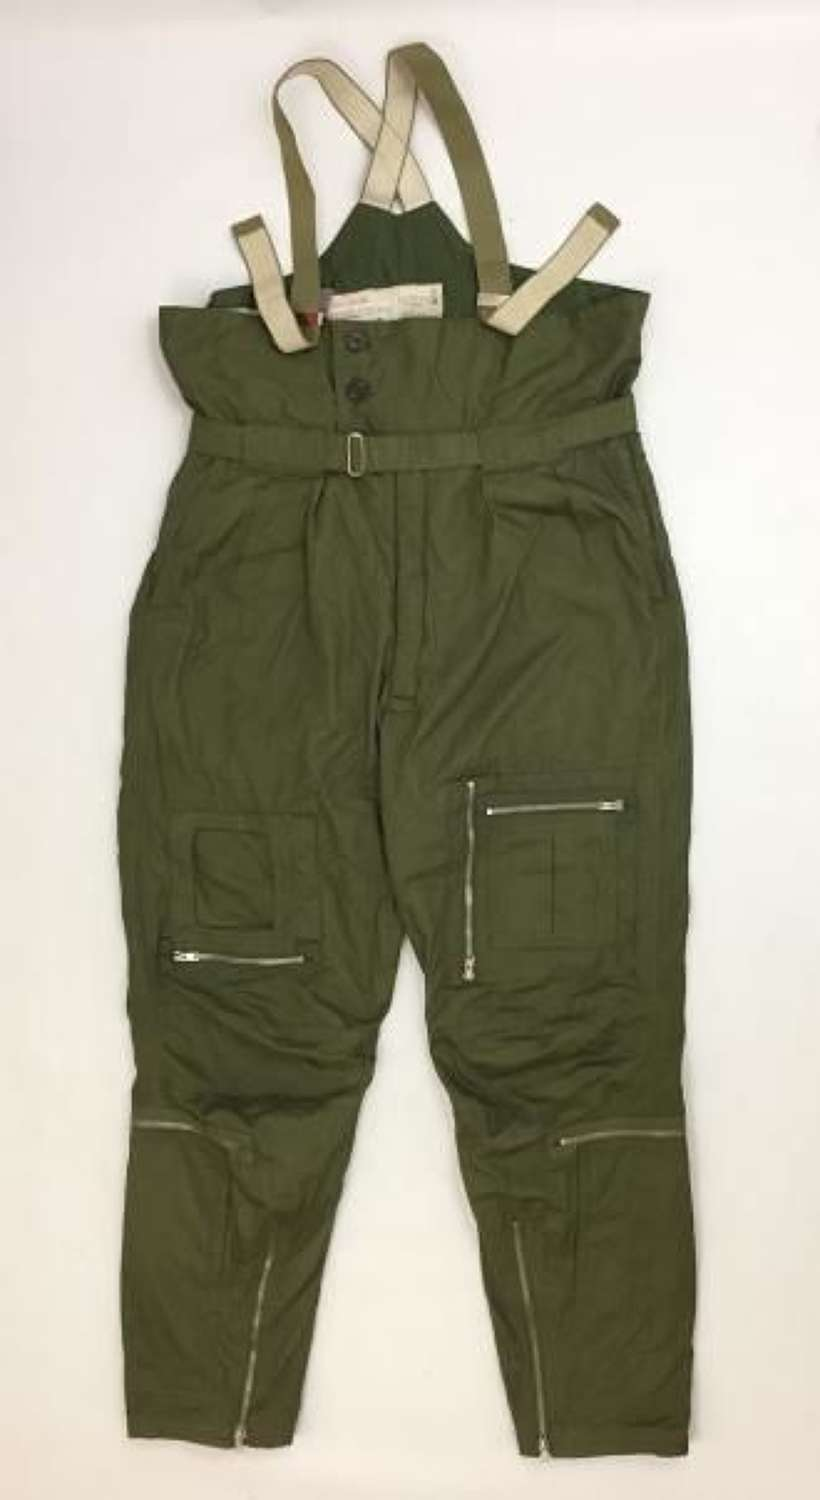 1973 Dated RAF MK 3 Cold Weather Flying Trousers